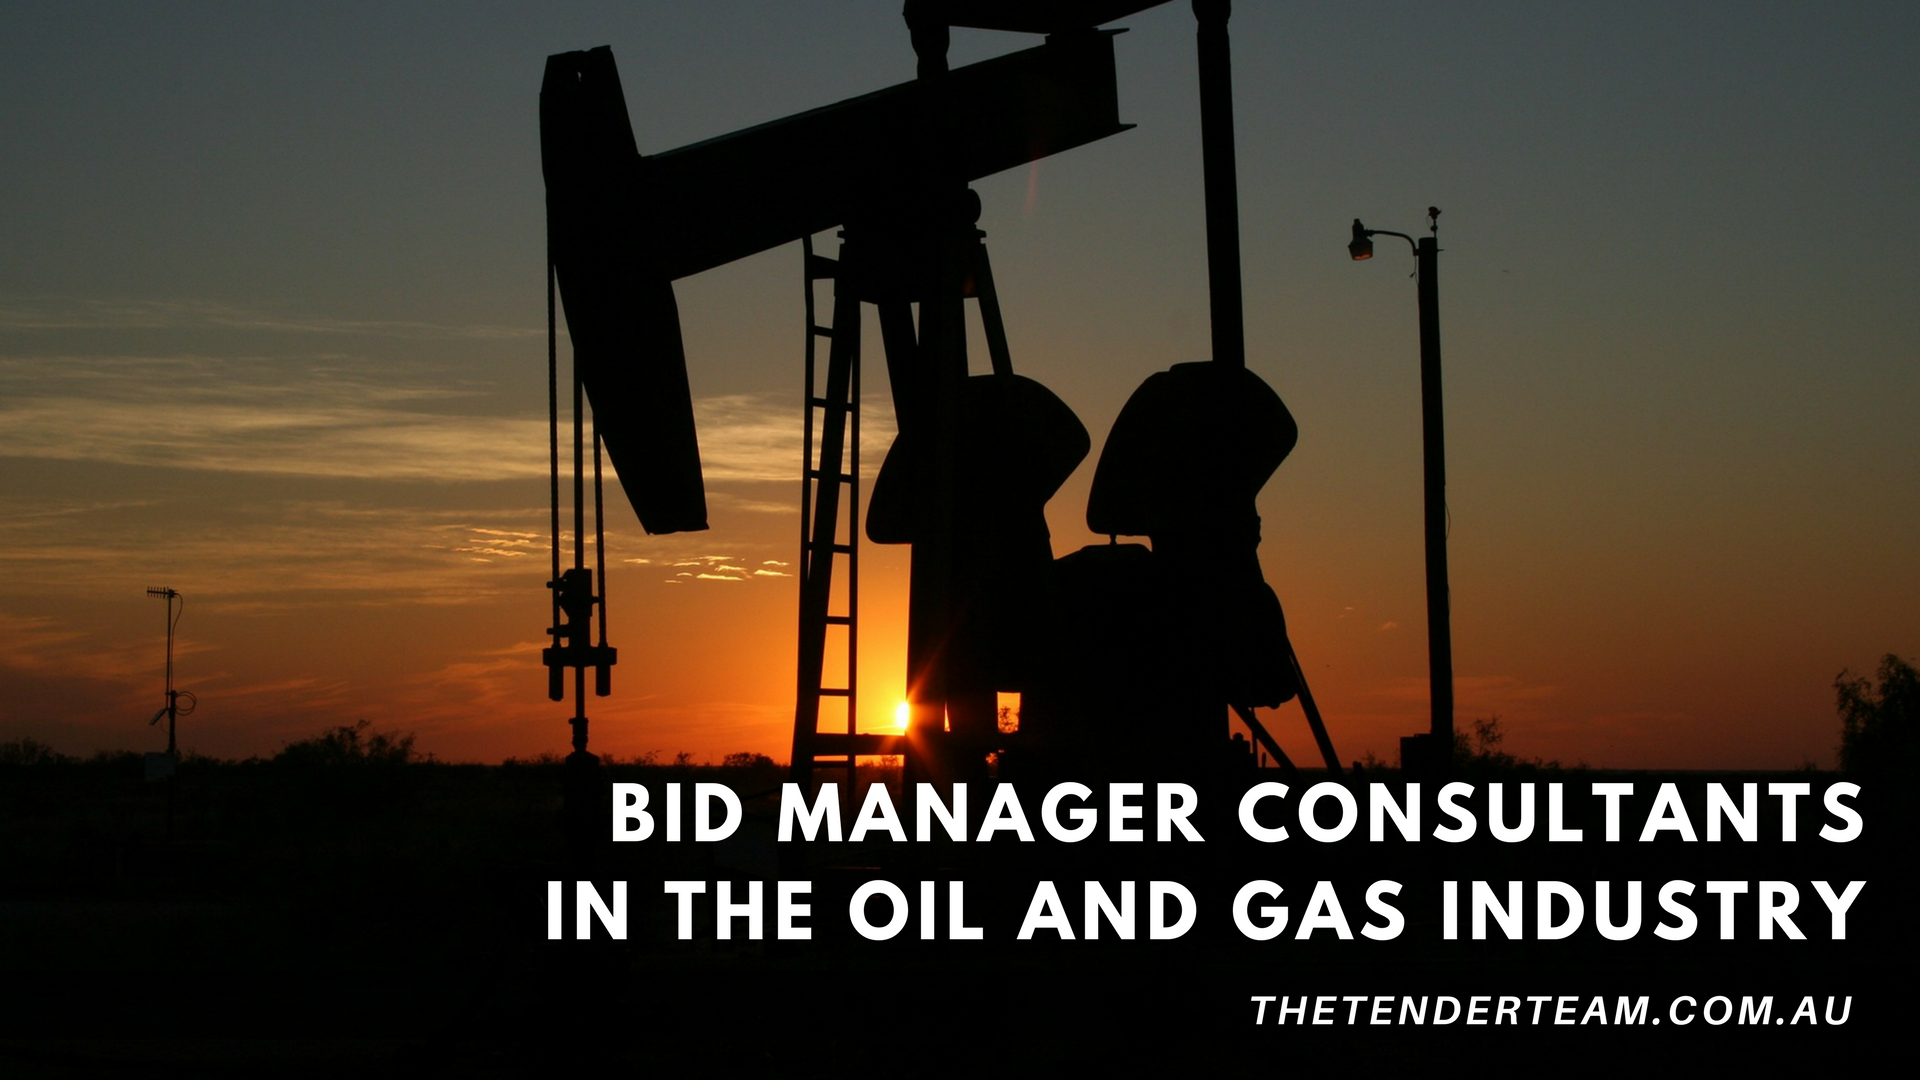 Bid Manager Consultants in the oil and gas industry